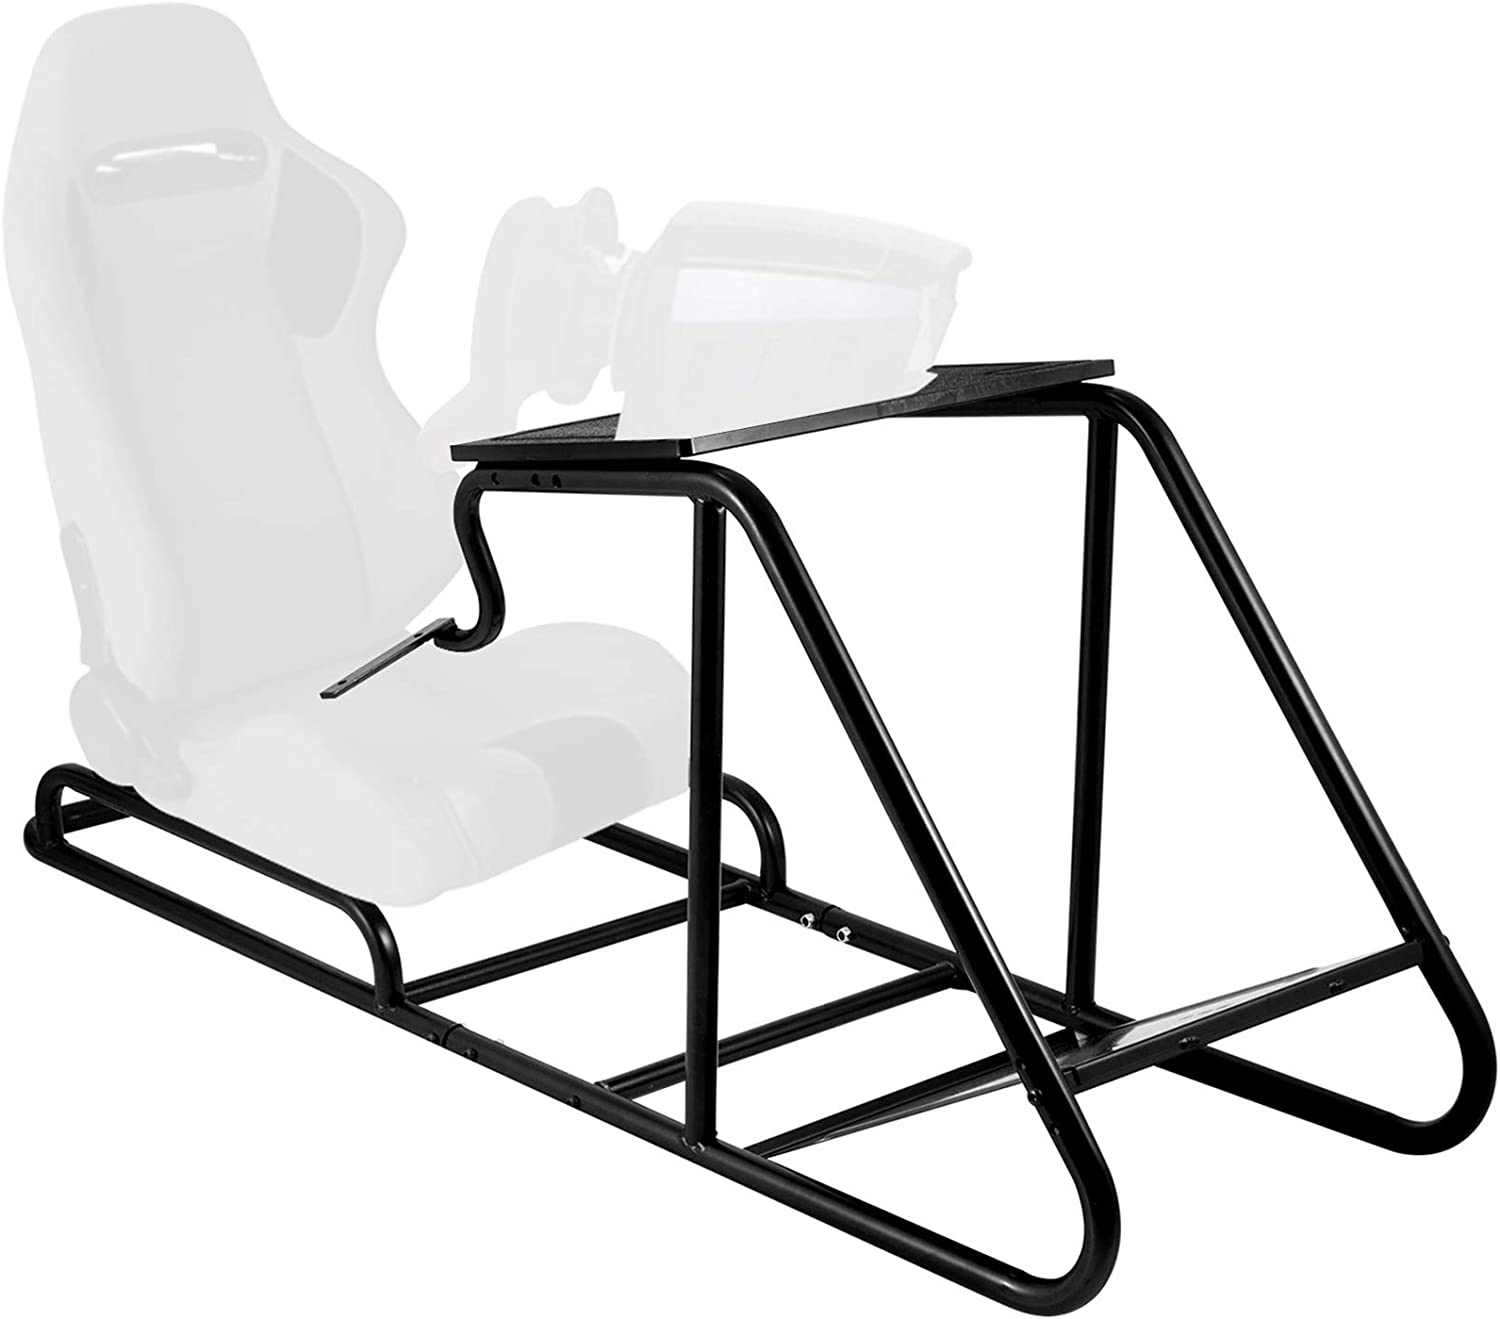 VEVOR Racing Simulator Stand Adjustable Steering Wheel Stand Carbon Steel Racing Wheel Stand fit for Logitech G25, G27, G29, G920, Racing Wheel Gaming Stand, Not Included Wheel,Pedals and Chair